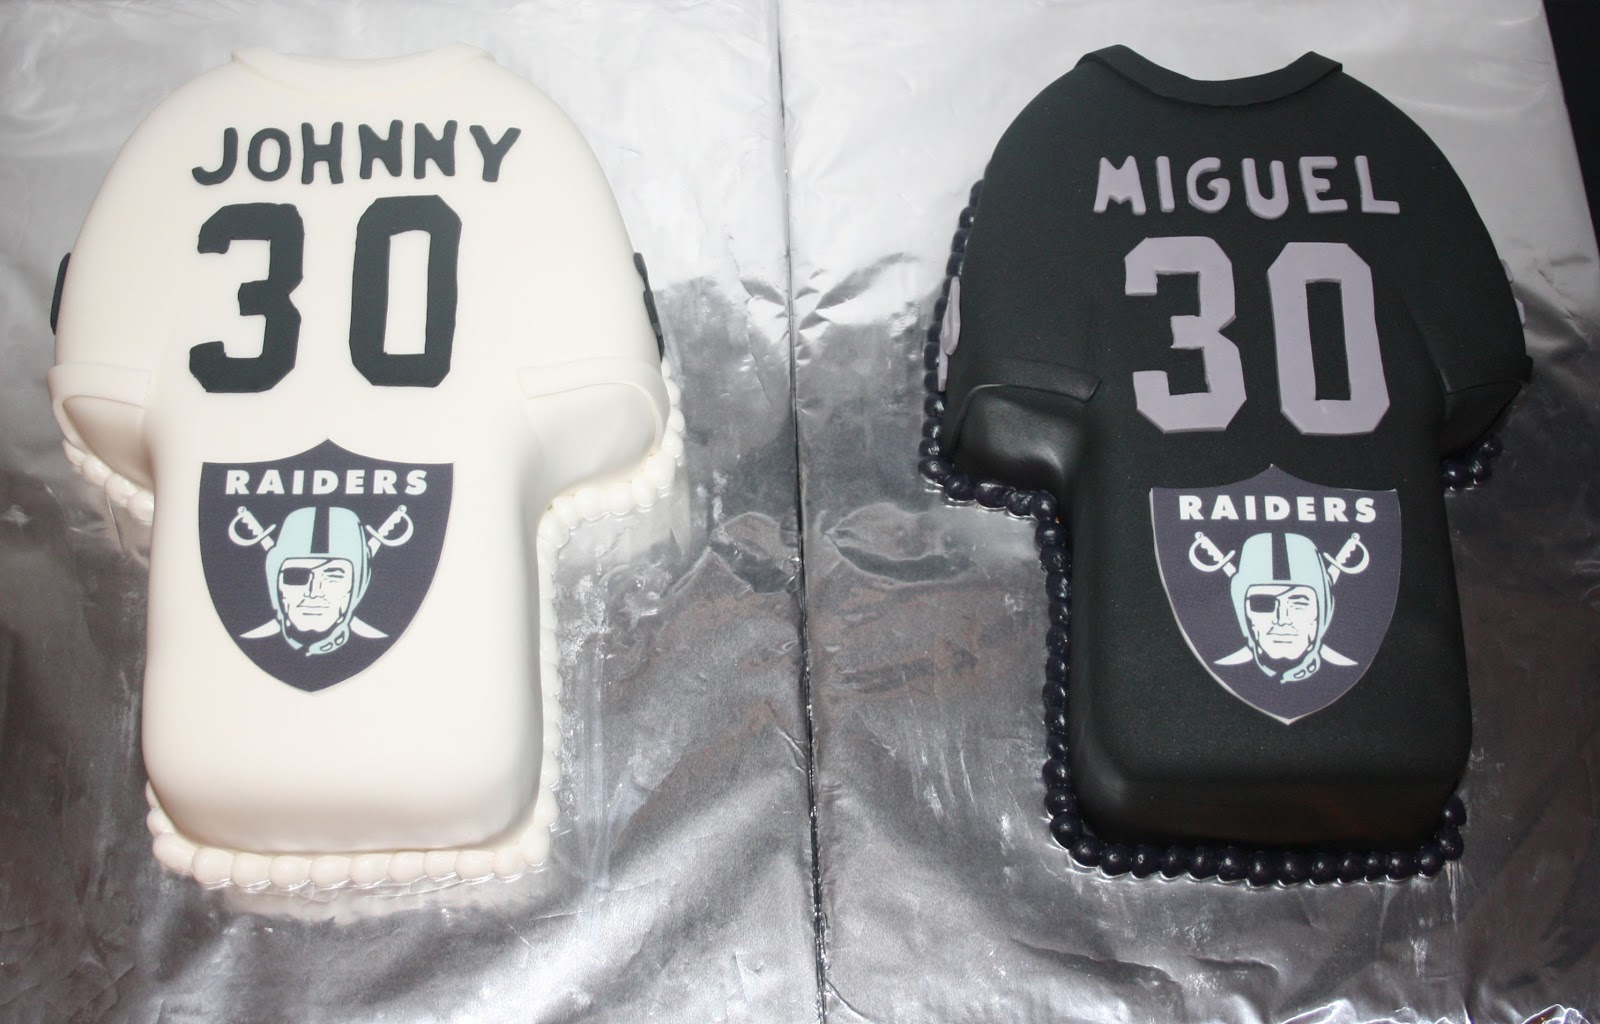 Jacquelines Sweet Shop Oakland Raiders 30th Birthday Cakes